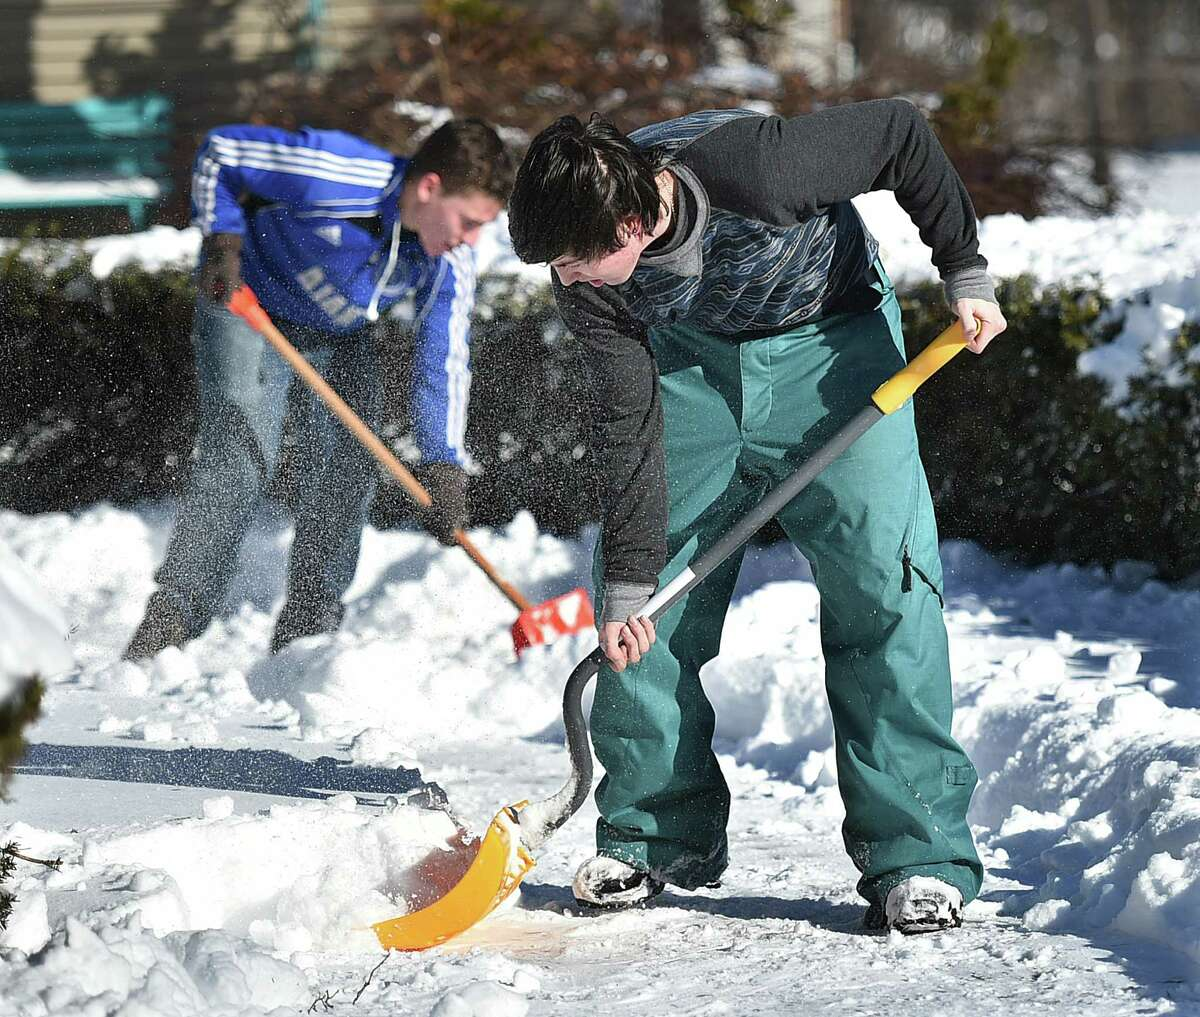 (Catherine Avalone - New Haven Register) Vincent Esposito, 21, front, and Alex Hill, 21, employees of Pasture of Dreams Landscaping in Wallingford clear snow from a driveway on North High Street in East Haven Wedensday, January 28, 2015. Esposito said,